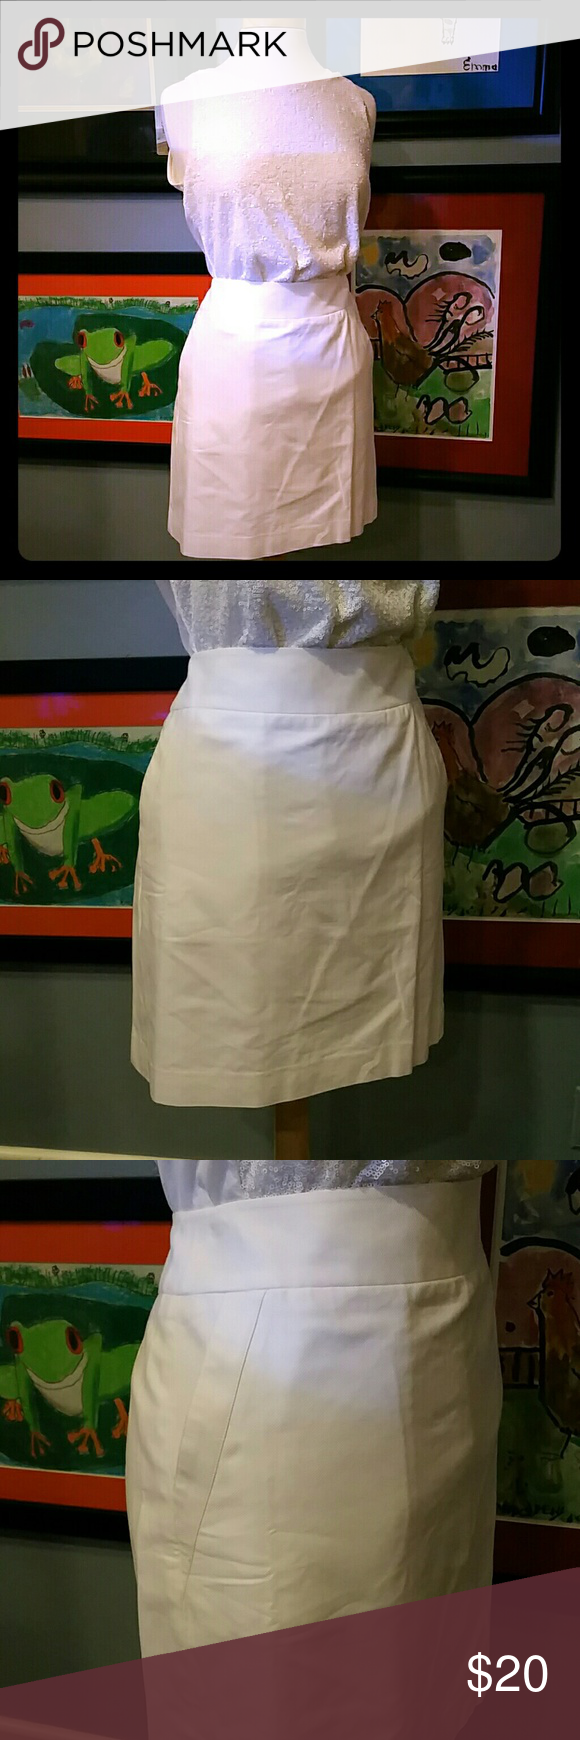 LOFT A-line, off white, fully lined skirt NWT, Beautiful for summer, cream / off white, fully lined, slightly gross grain textured, go with almost any top. LOFT Skirts A-Line or Full